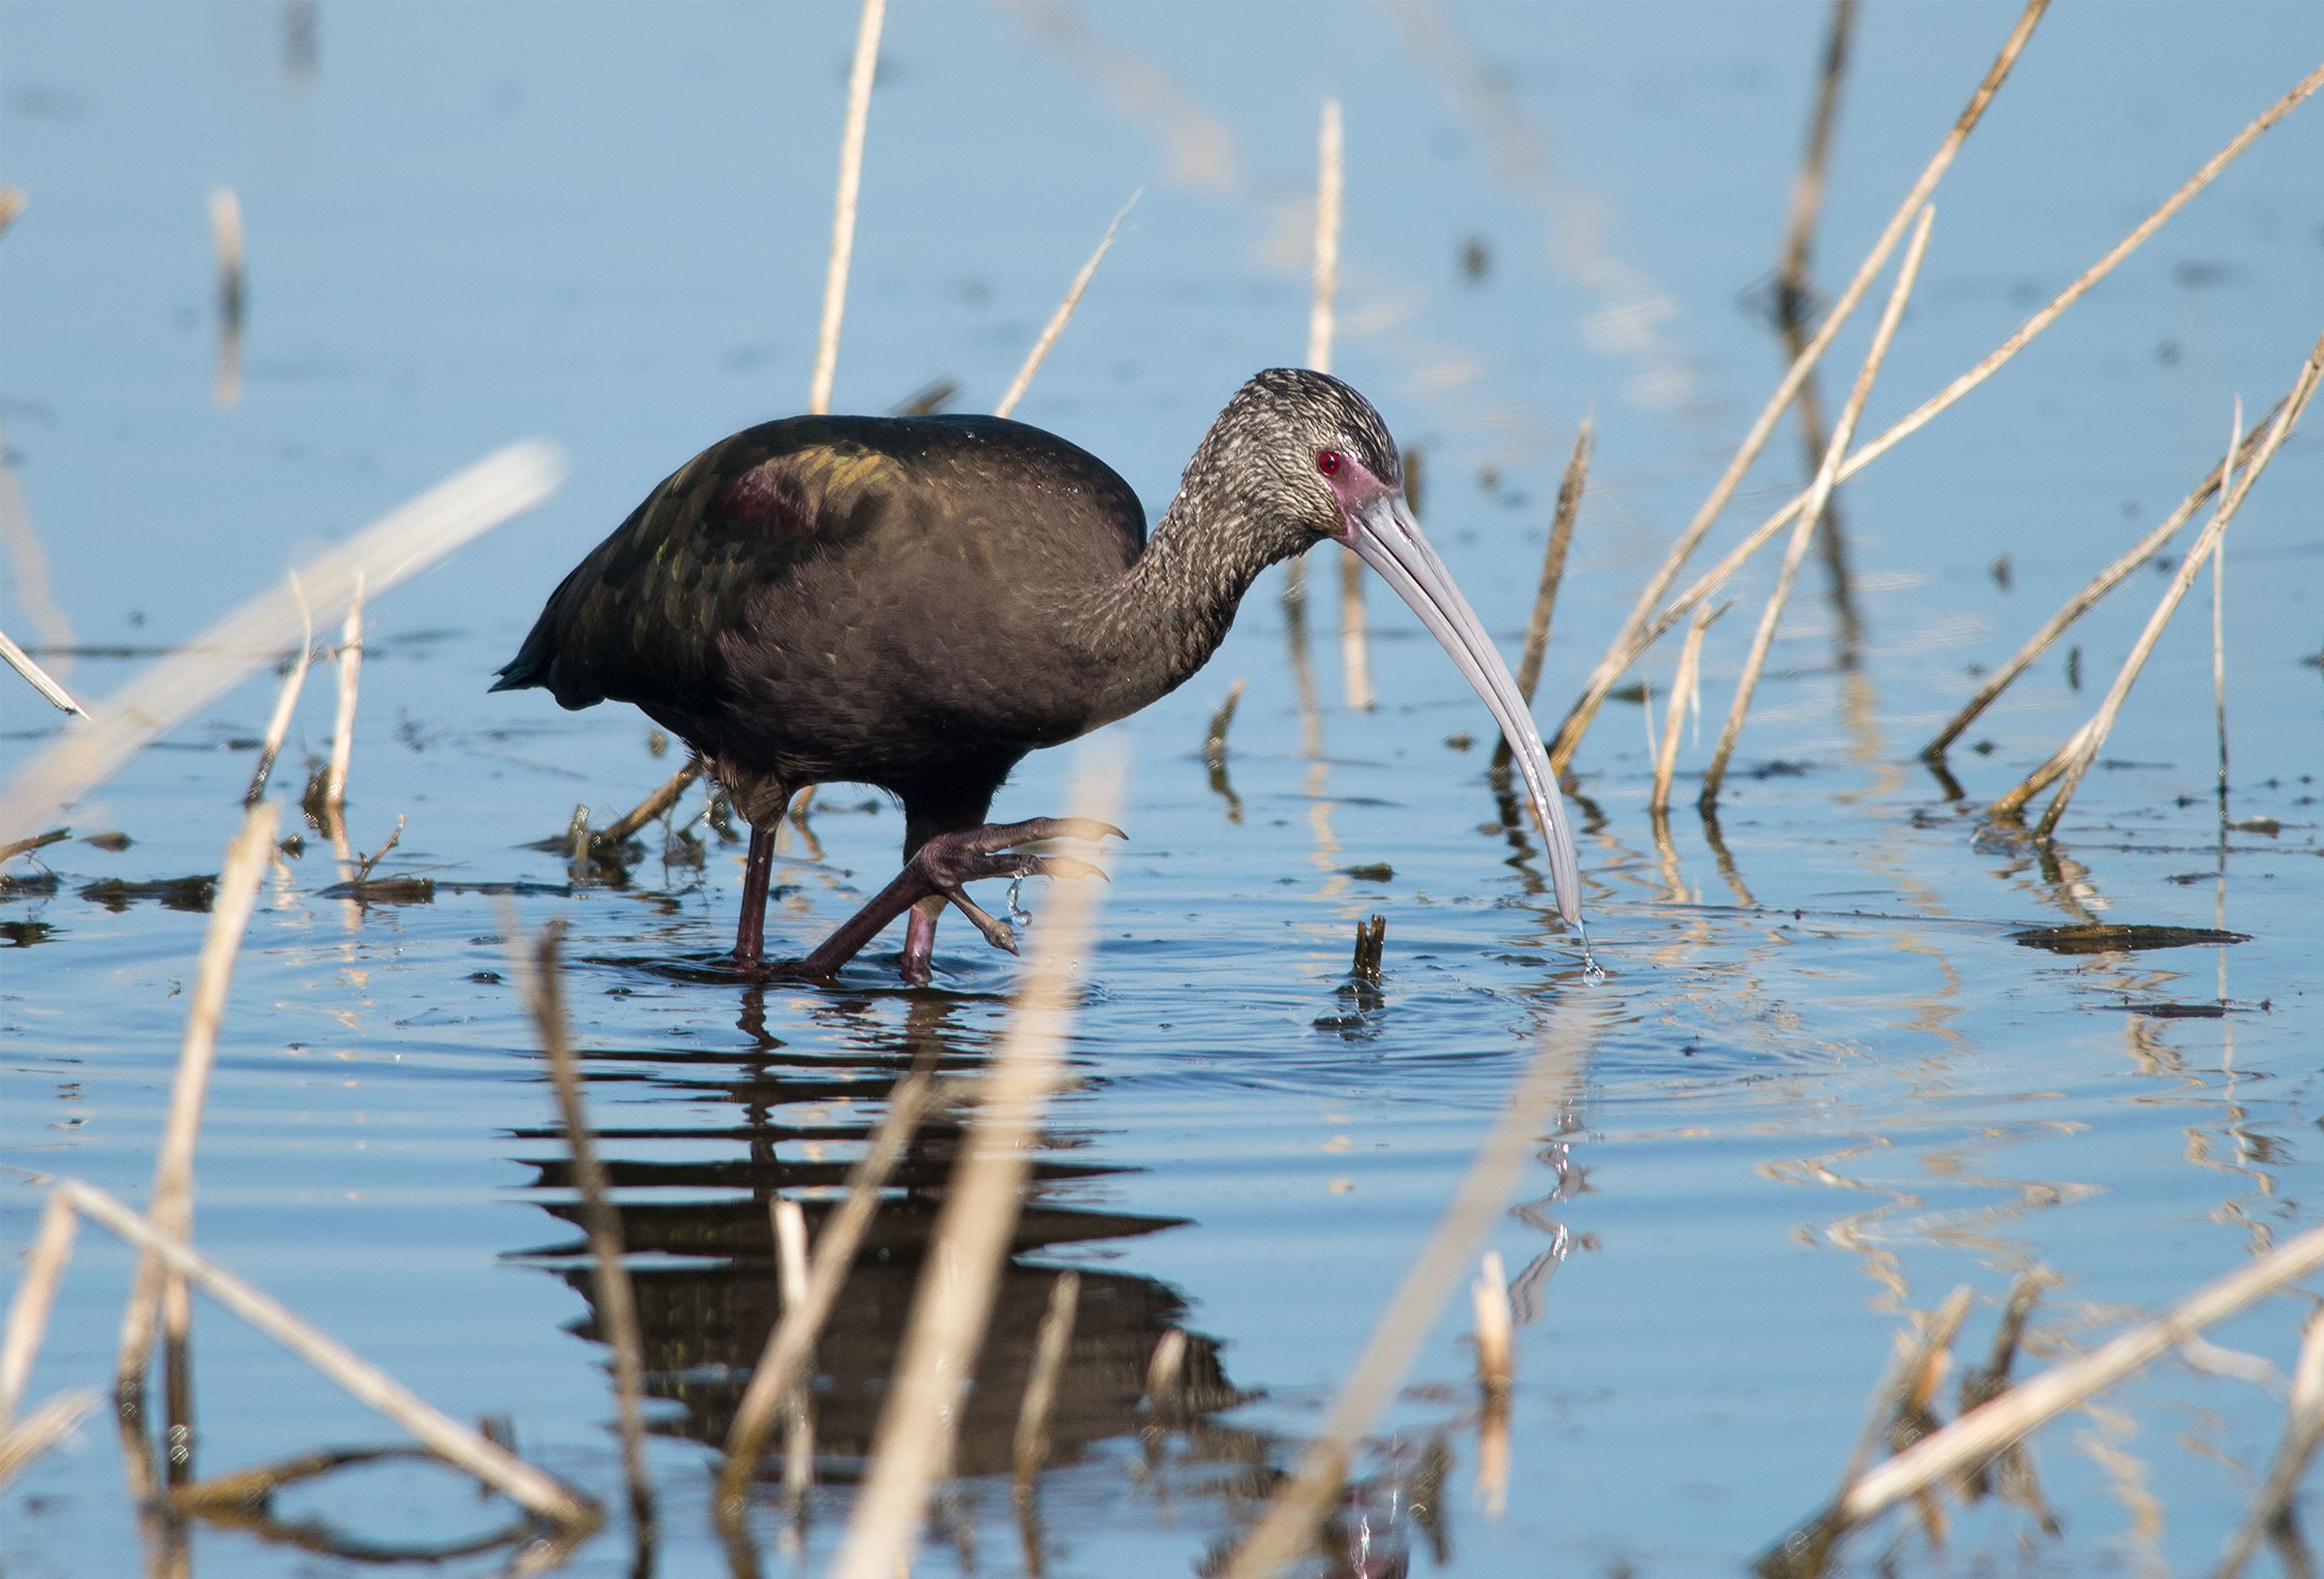 """White-faced Ibis in nonbreeding plumage. The bright pink patch of skin on its face and red eye distinguishes it from the Glossy Ibis. <a href=""""https://www.flickr.com/photos/pattymc/11165362556/"""">Patty McGann</a>/Flickr CC (BY-NC 2.0)"""